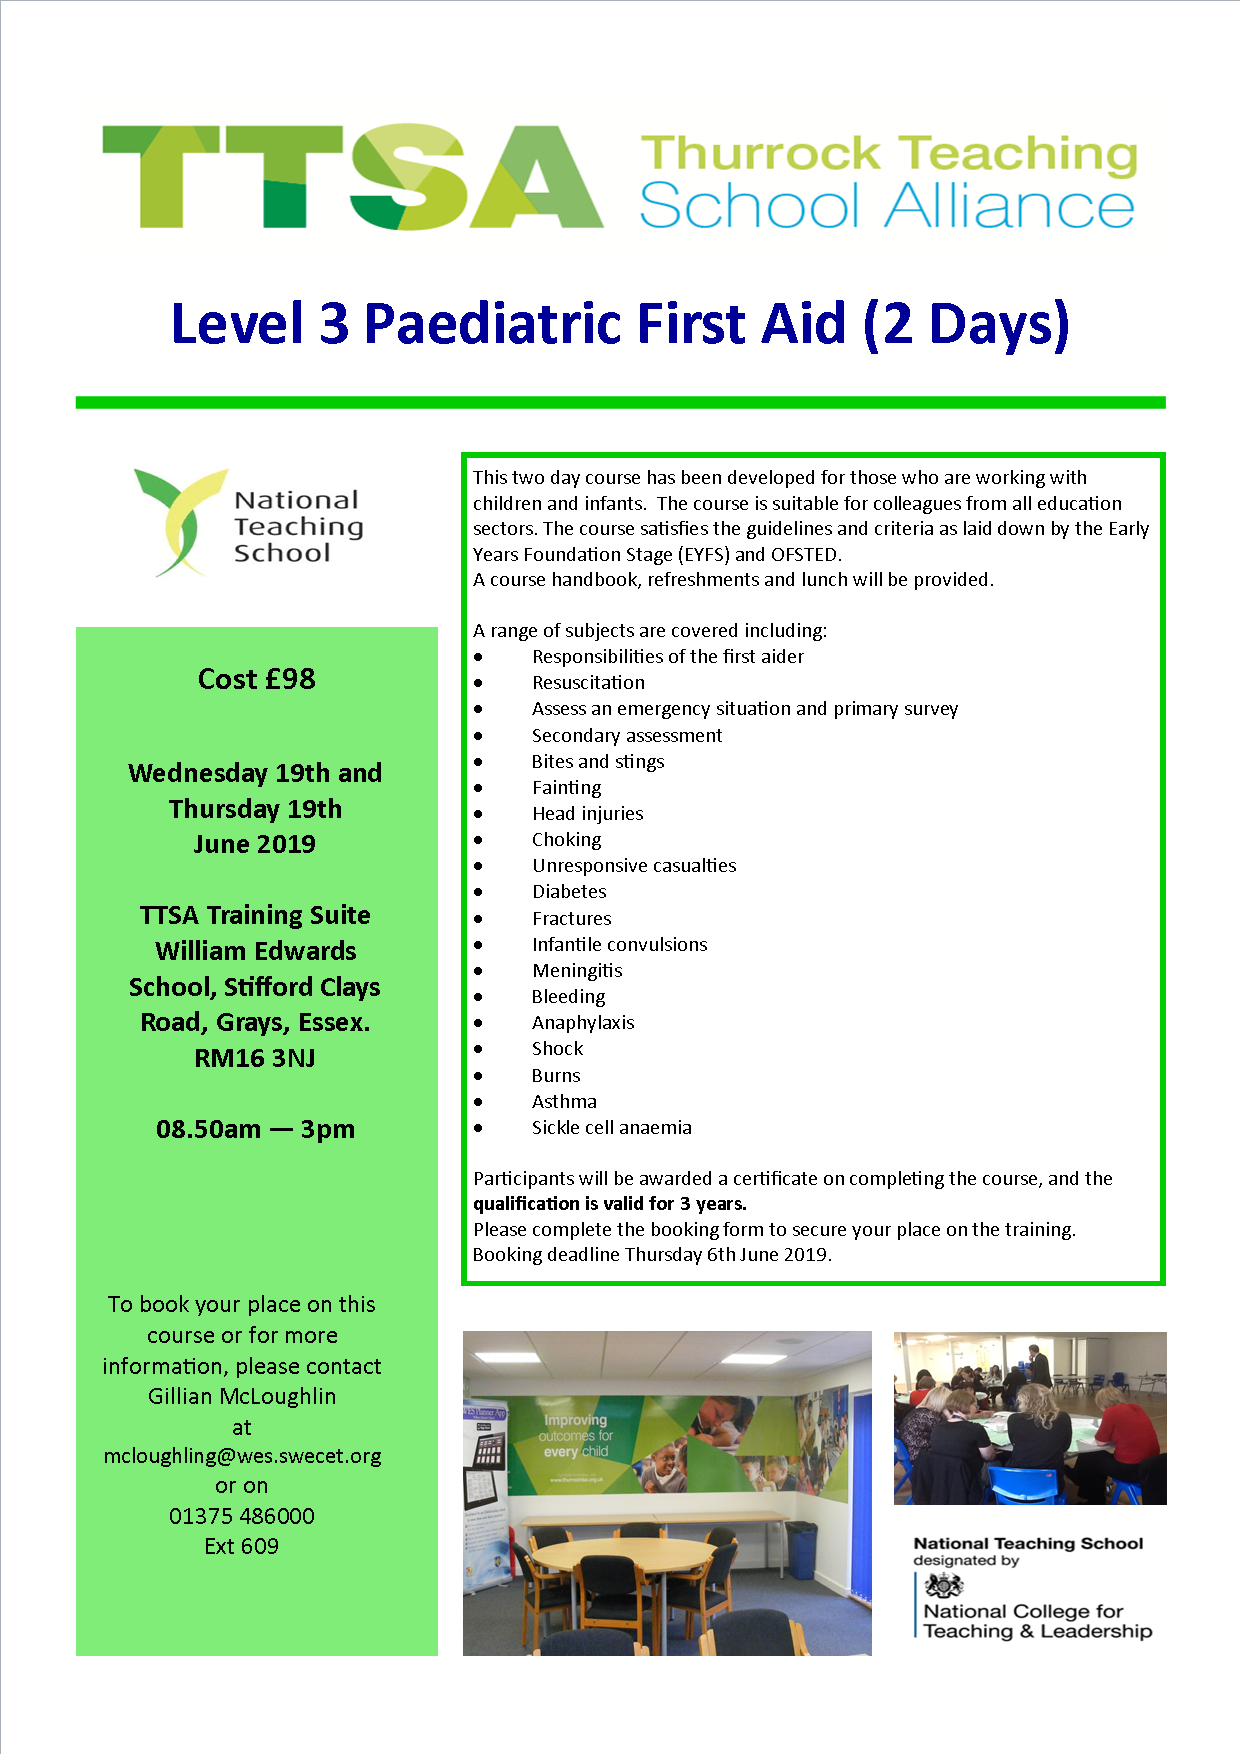 Level 3 Paediatric First Aid (2 Days) – Thurrock Teaching